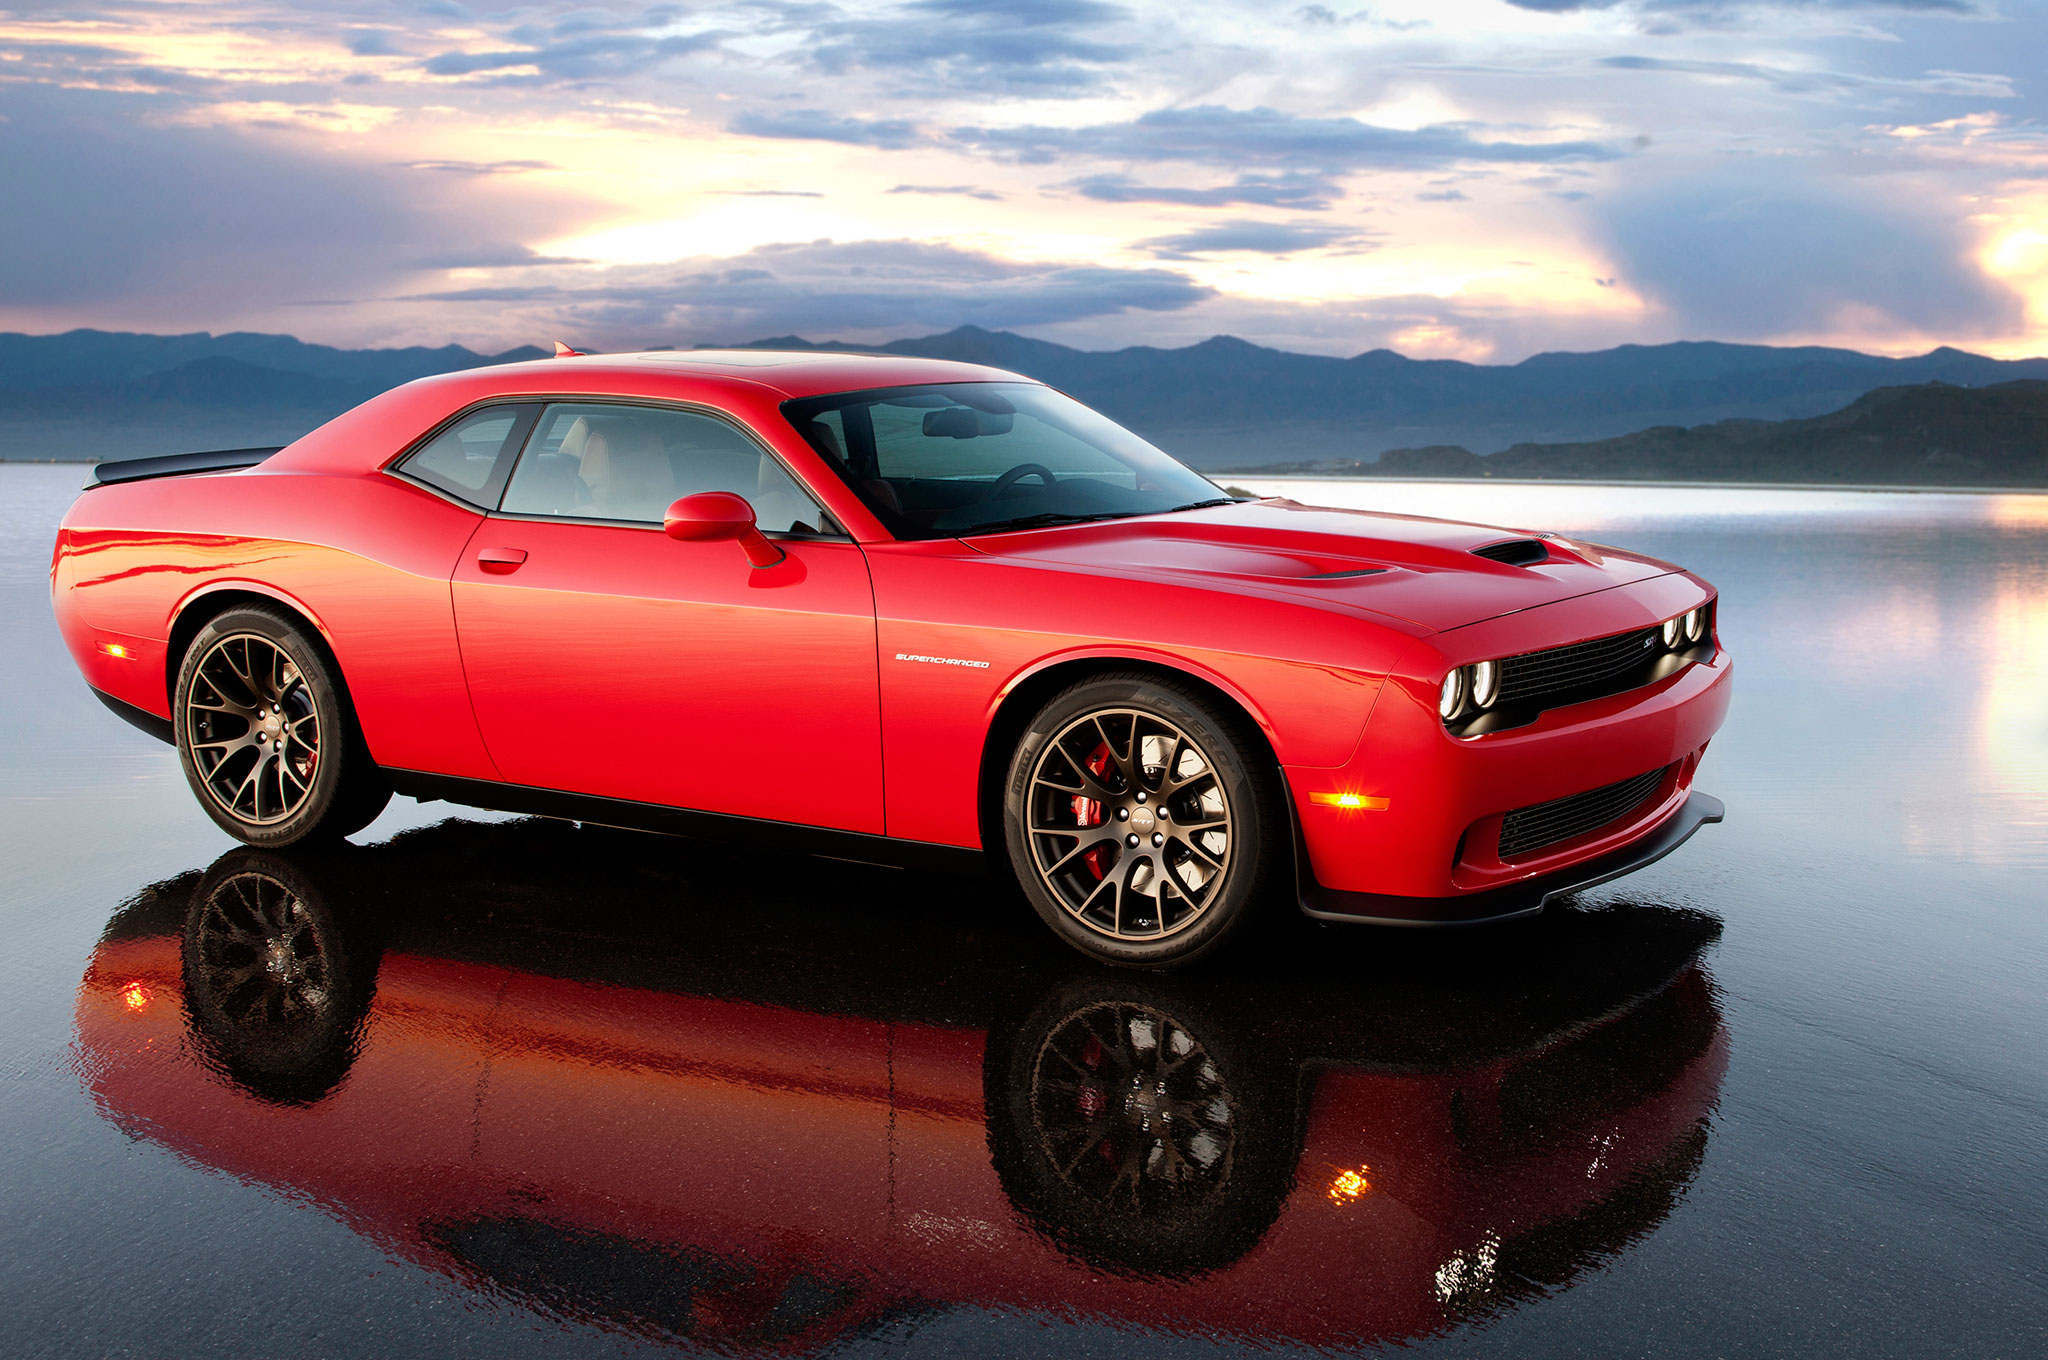 2015 Dodge Challenger SRT Hellcat Side View With Reflection3